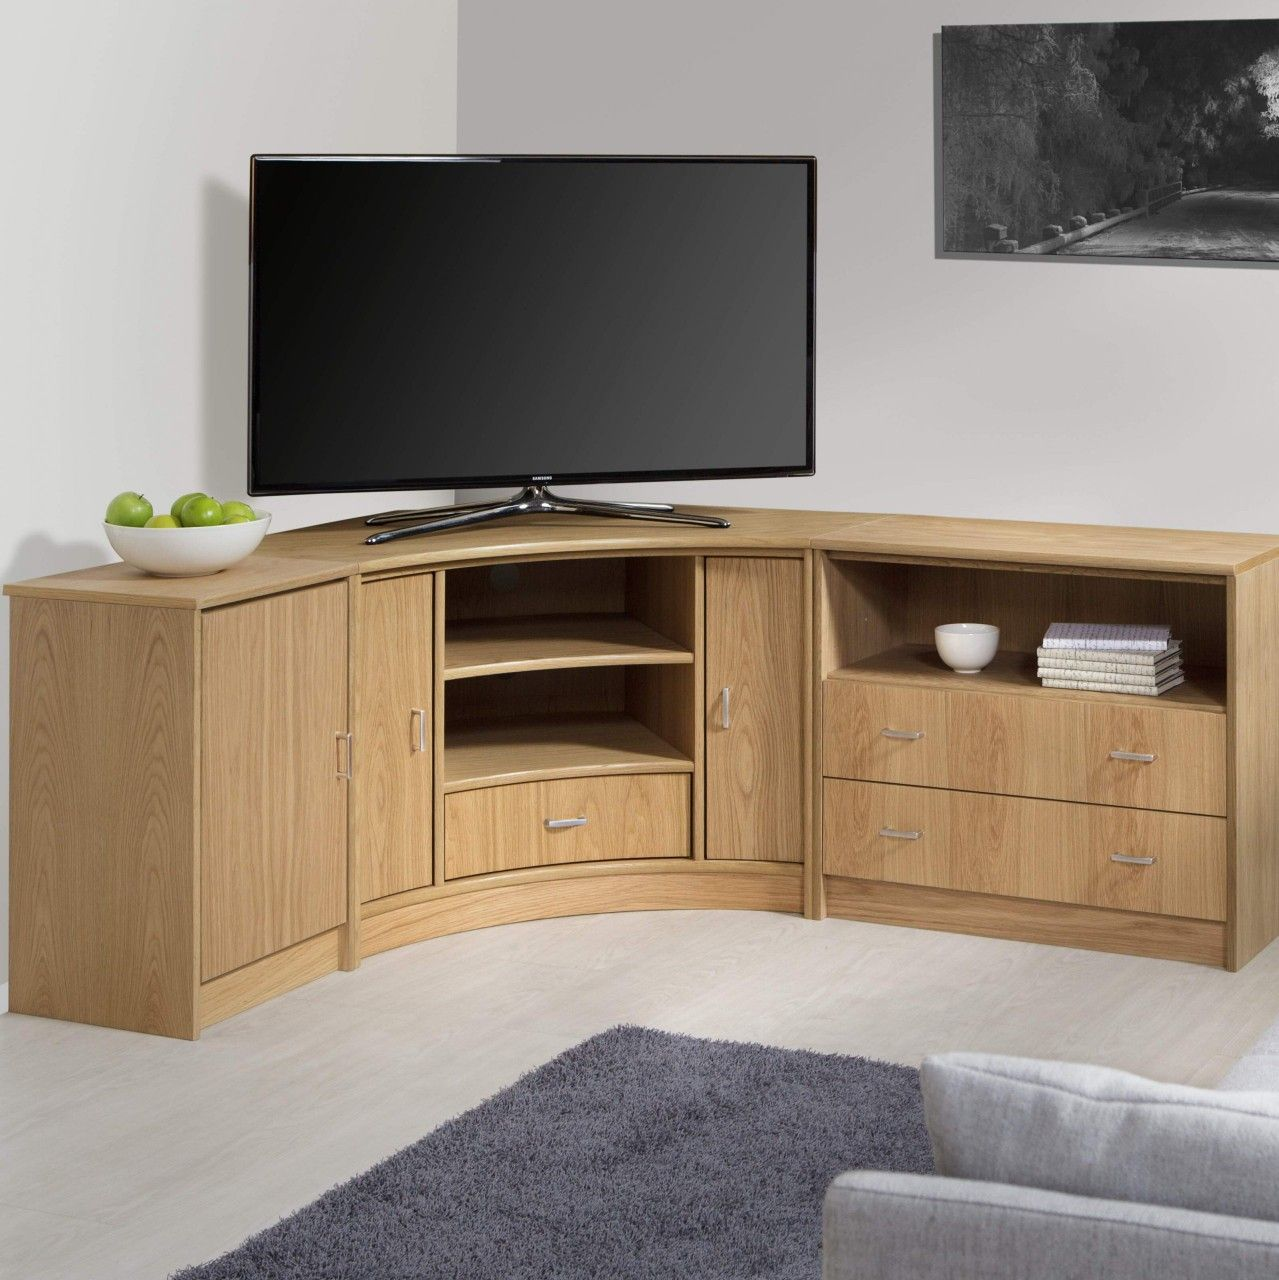 Beautiful Corner Tv Stand Ideas To See More Read It In 2021 Corner Tv Stand Corner Tv Stands Tall Corner Tv Stand